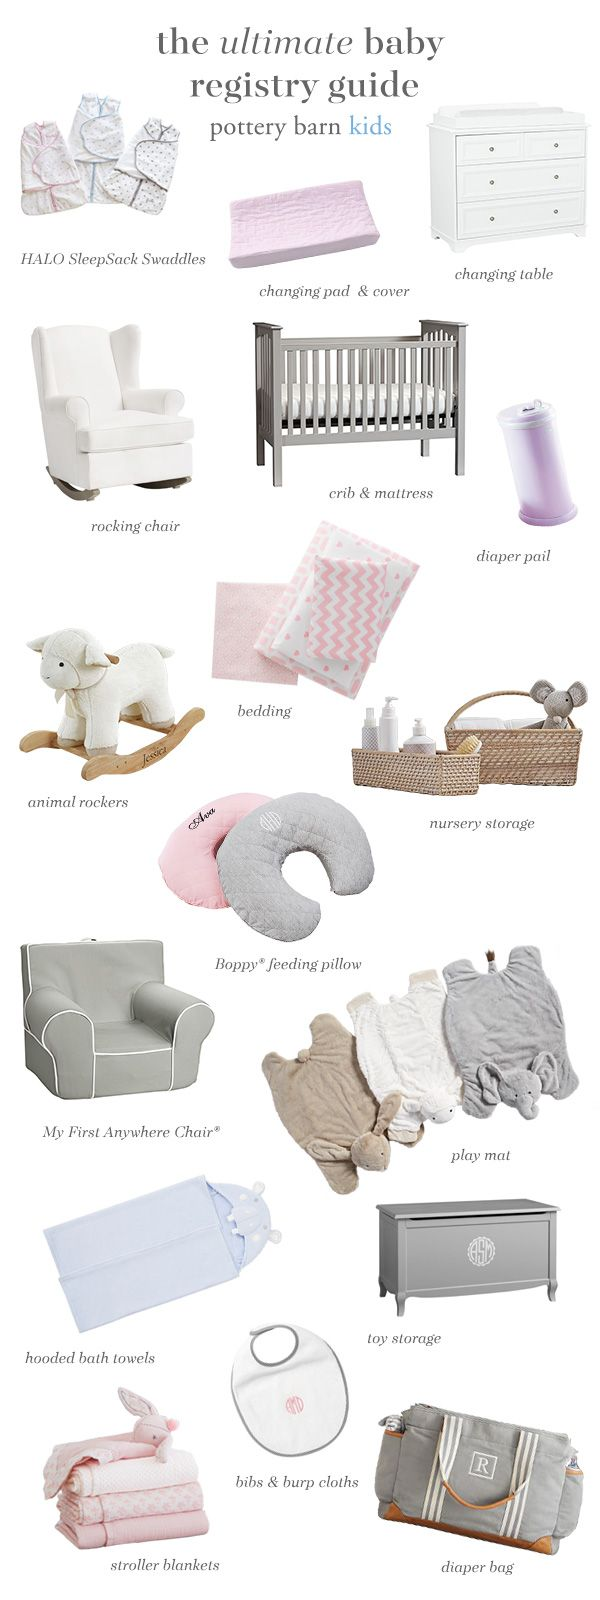 Register for all the things you need to welcome baby home into an inviting and safe space. From sturdy cribs to plush play mats to rocking chairs that can easily transition back into the living room, here's everything you need to bring home your new bundle.